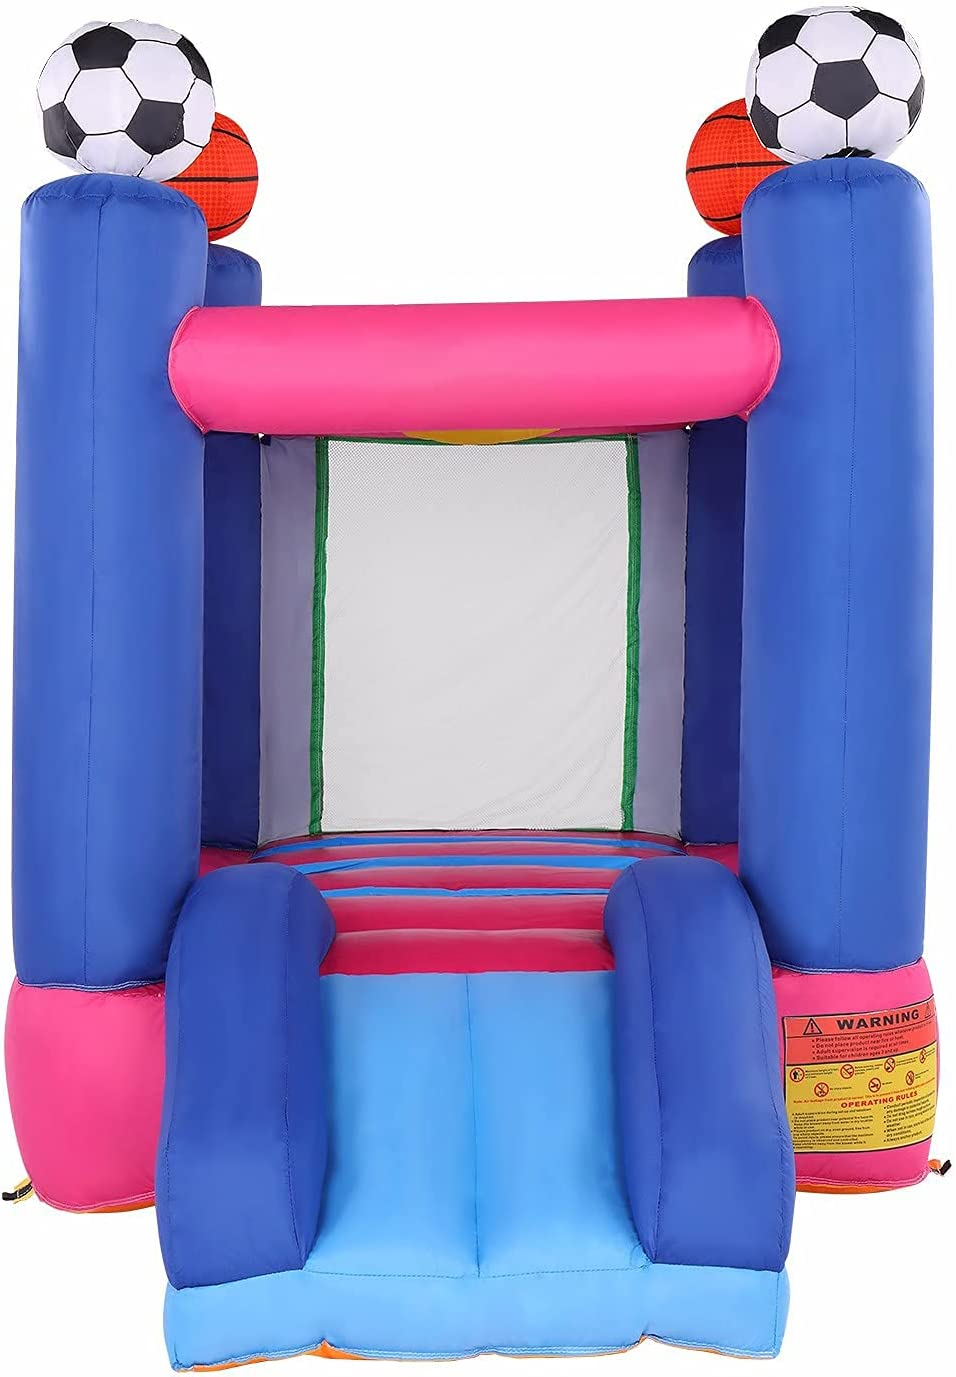 HDZW Blow-Up Jump Bouncy Soldering Castle Outdoor Inflatable B Children's New product